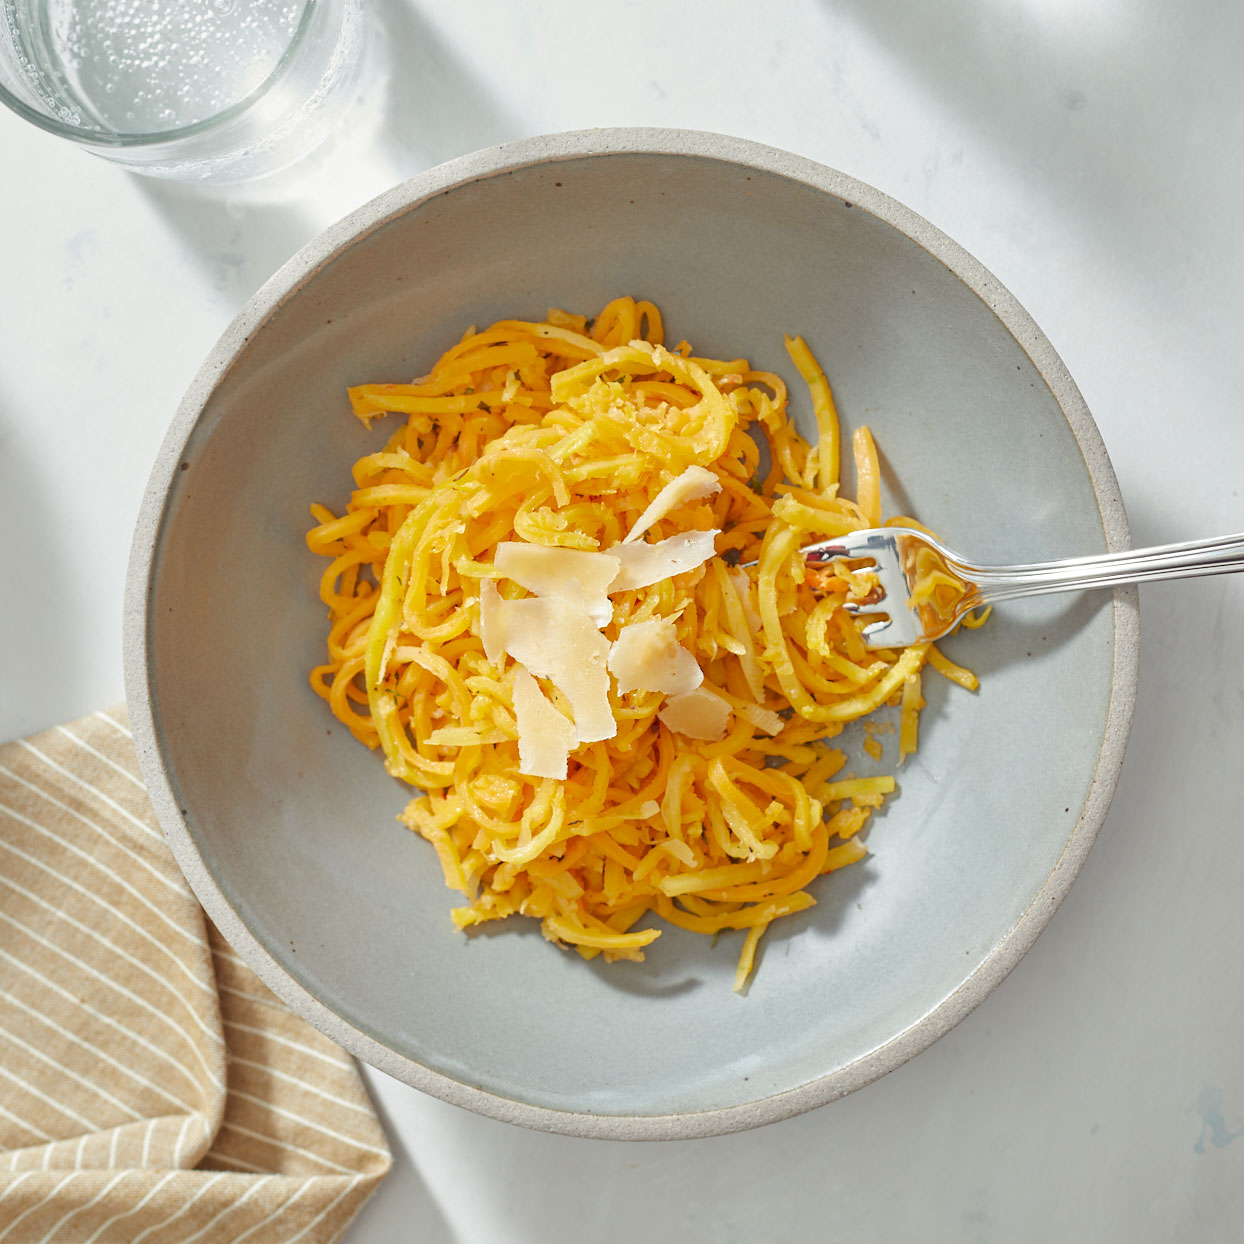 Butternut squash noodles make a great low-carb stand-in for pasta or can be an easy side dish that complements just about everything. We kept this recipe simple with just a hint of fresh thyme and savory Parmesan cheese. Look for fresh or frozen butternut squash noodles or spiralize them yourself using the long, thin neck of a large squash.